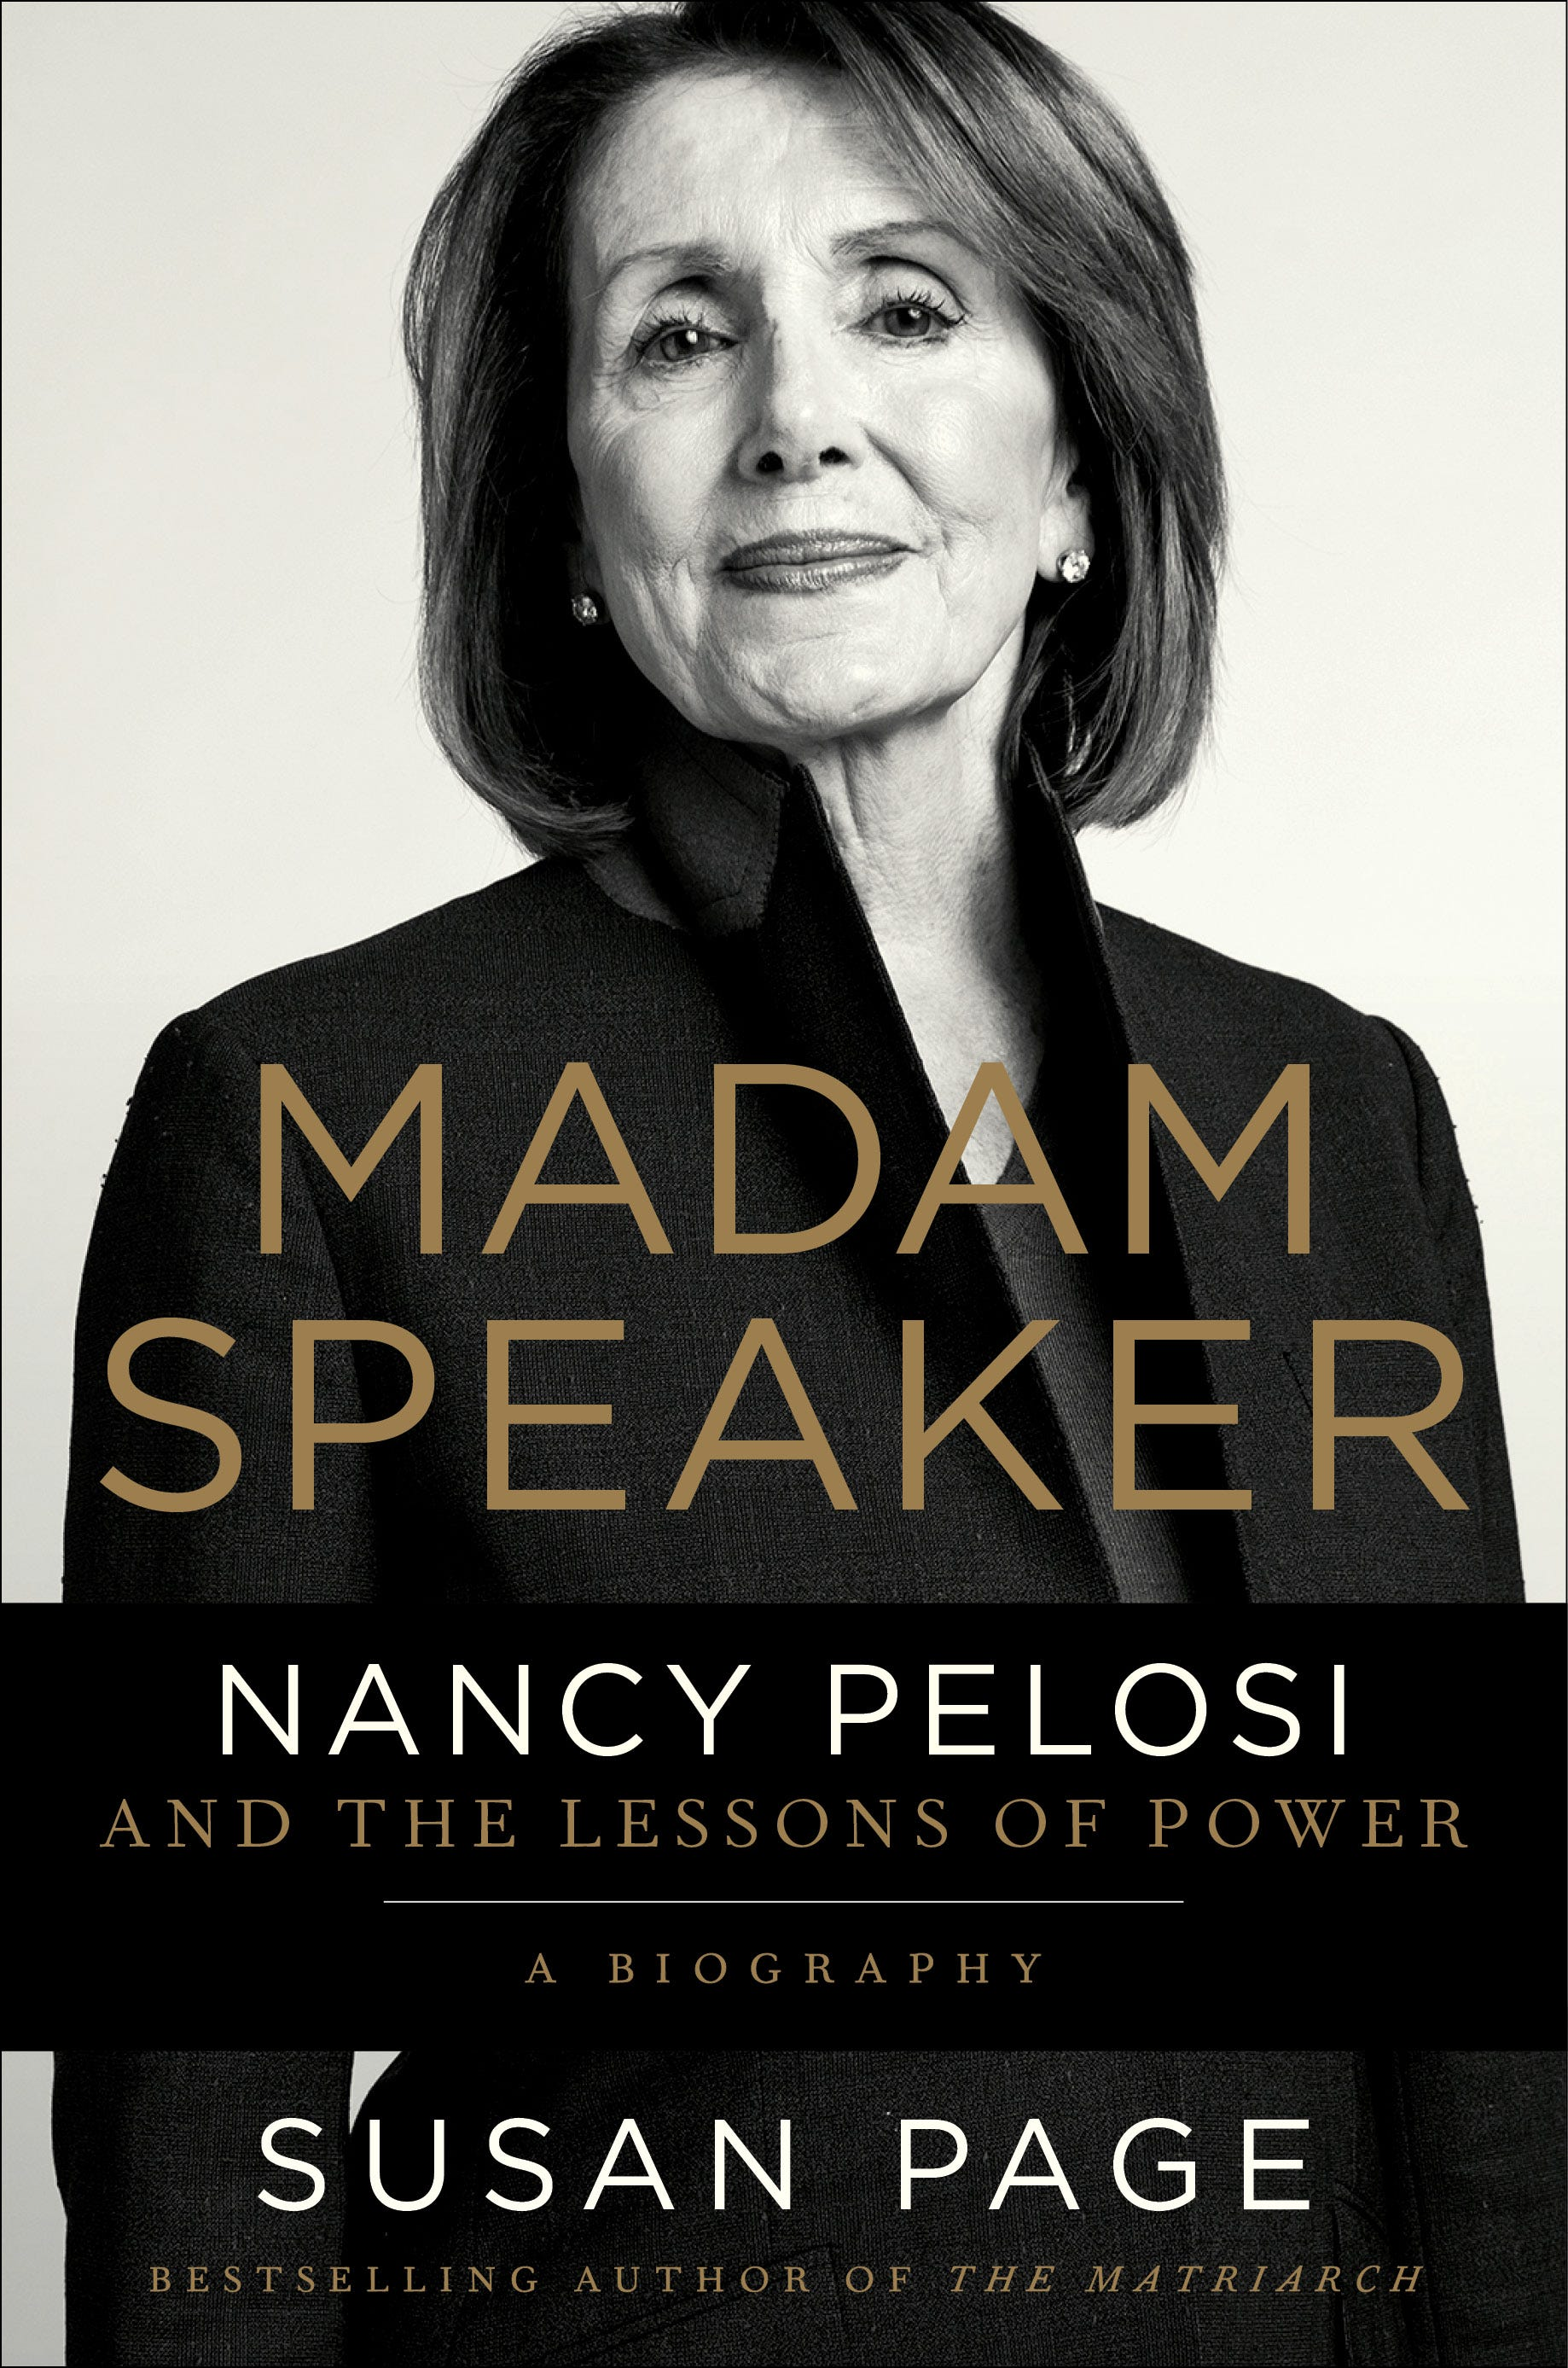 USA TODAY s Susan Page to release Nancy Pelosi biography in April 2021